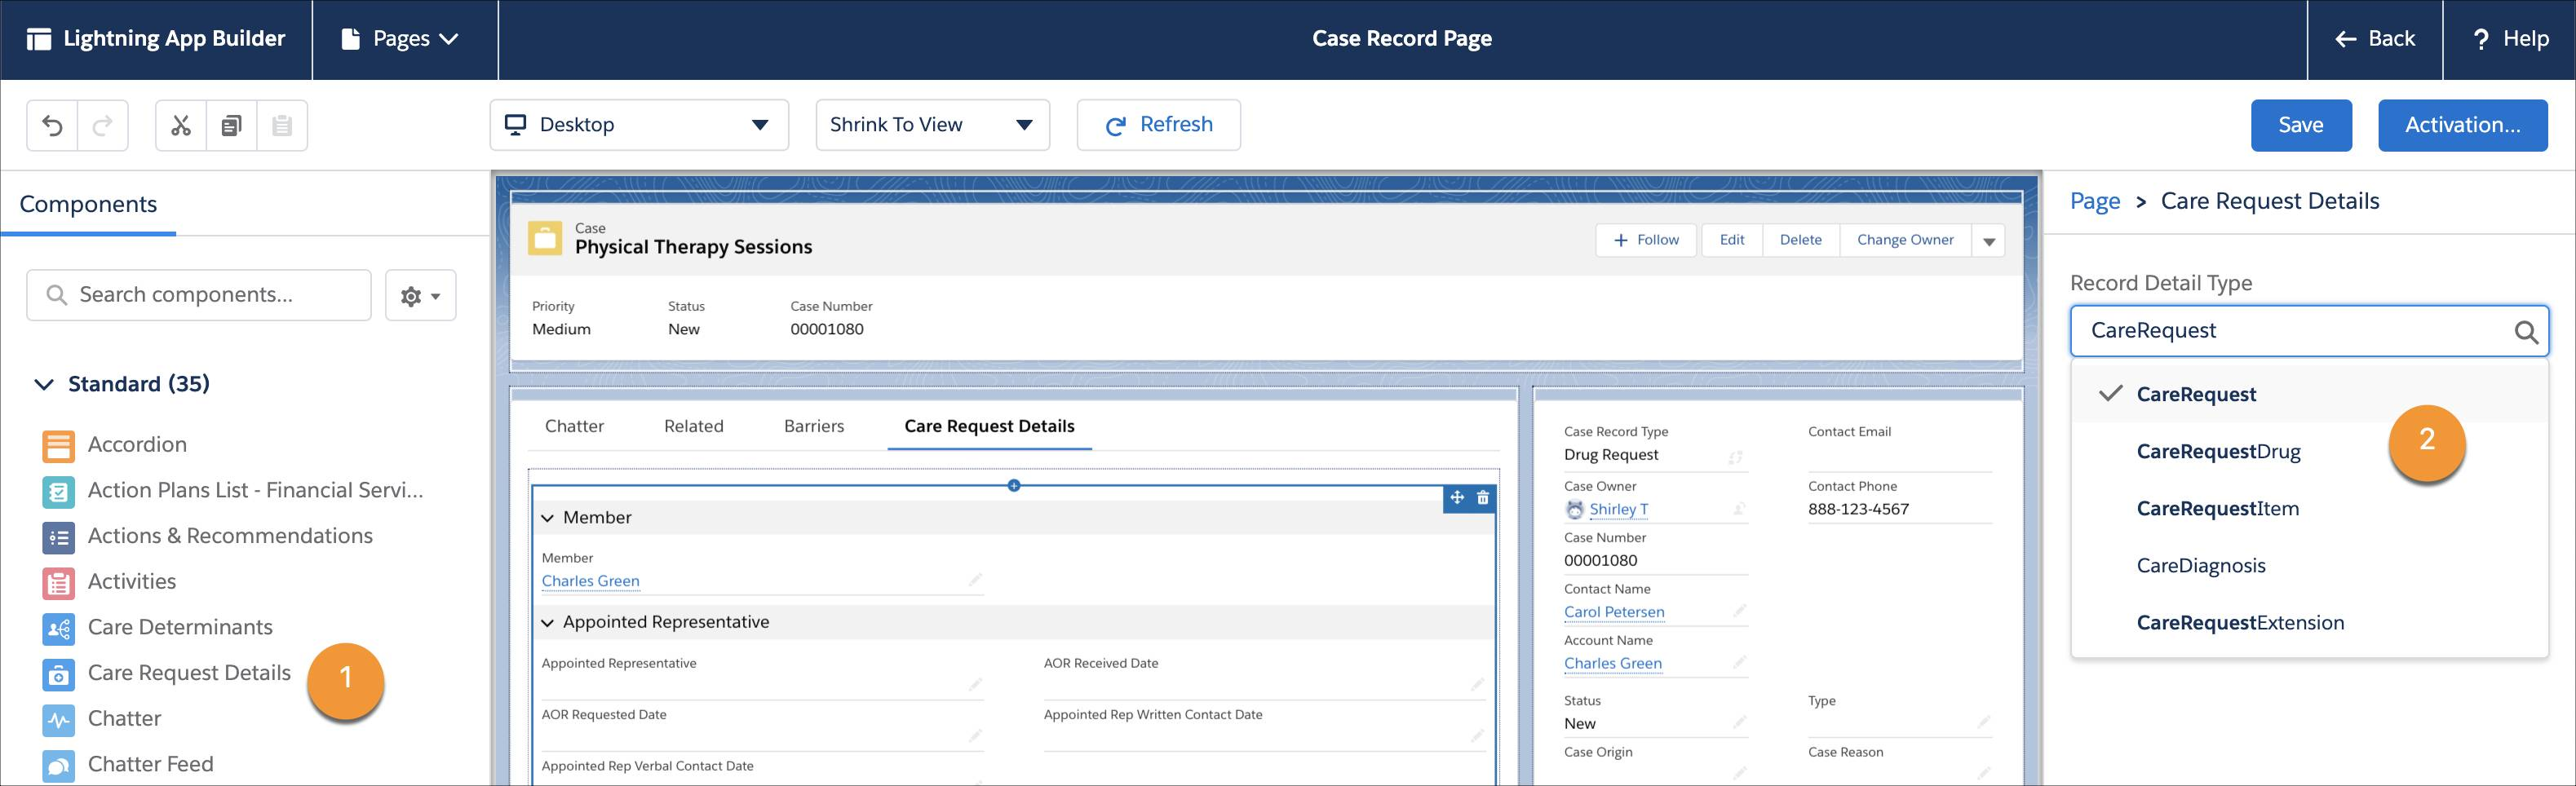 The Case Record Page showing the Case Request Details component and the option you can click to select the record detail type.